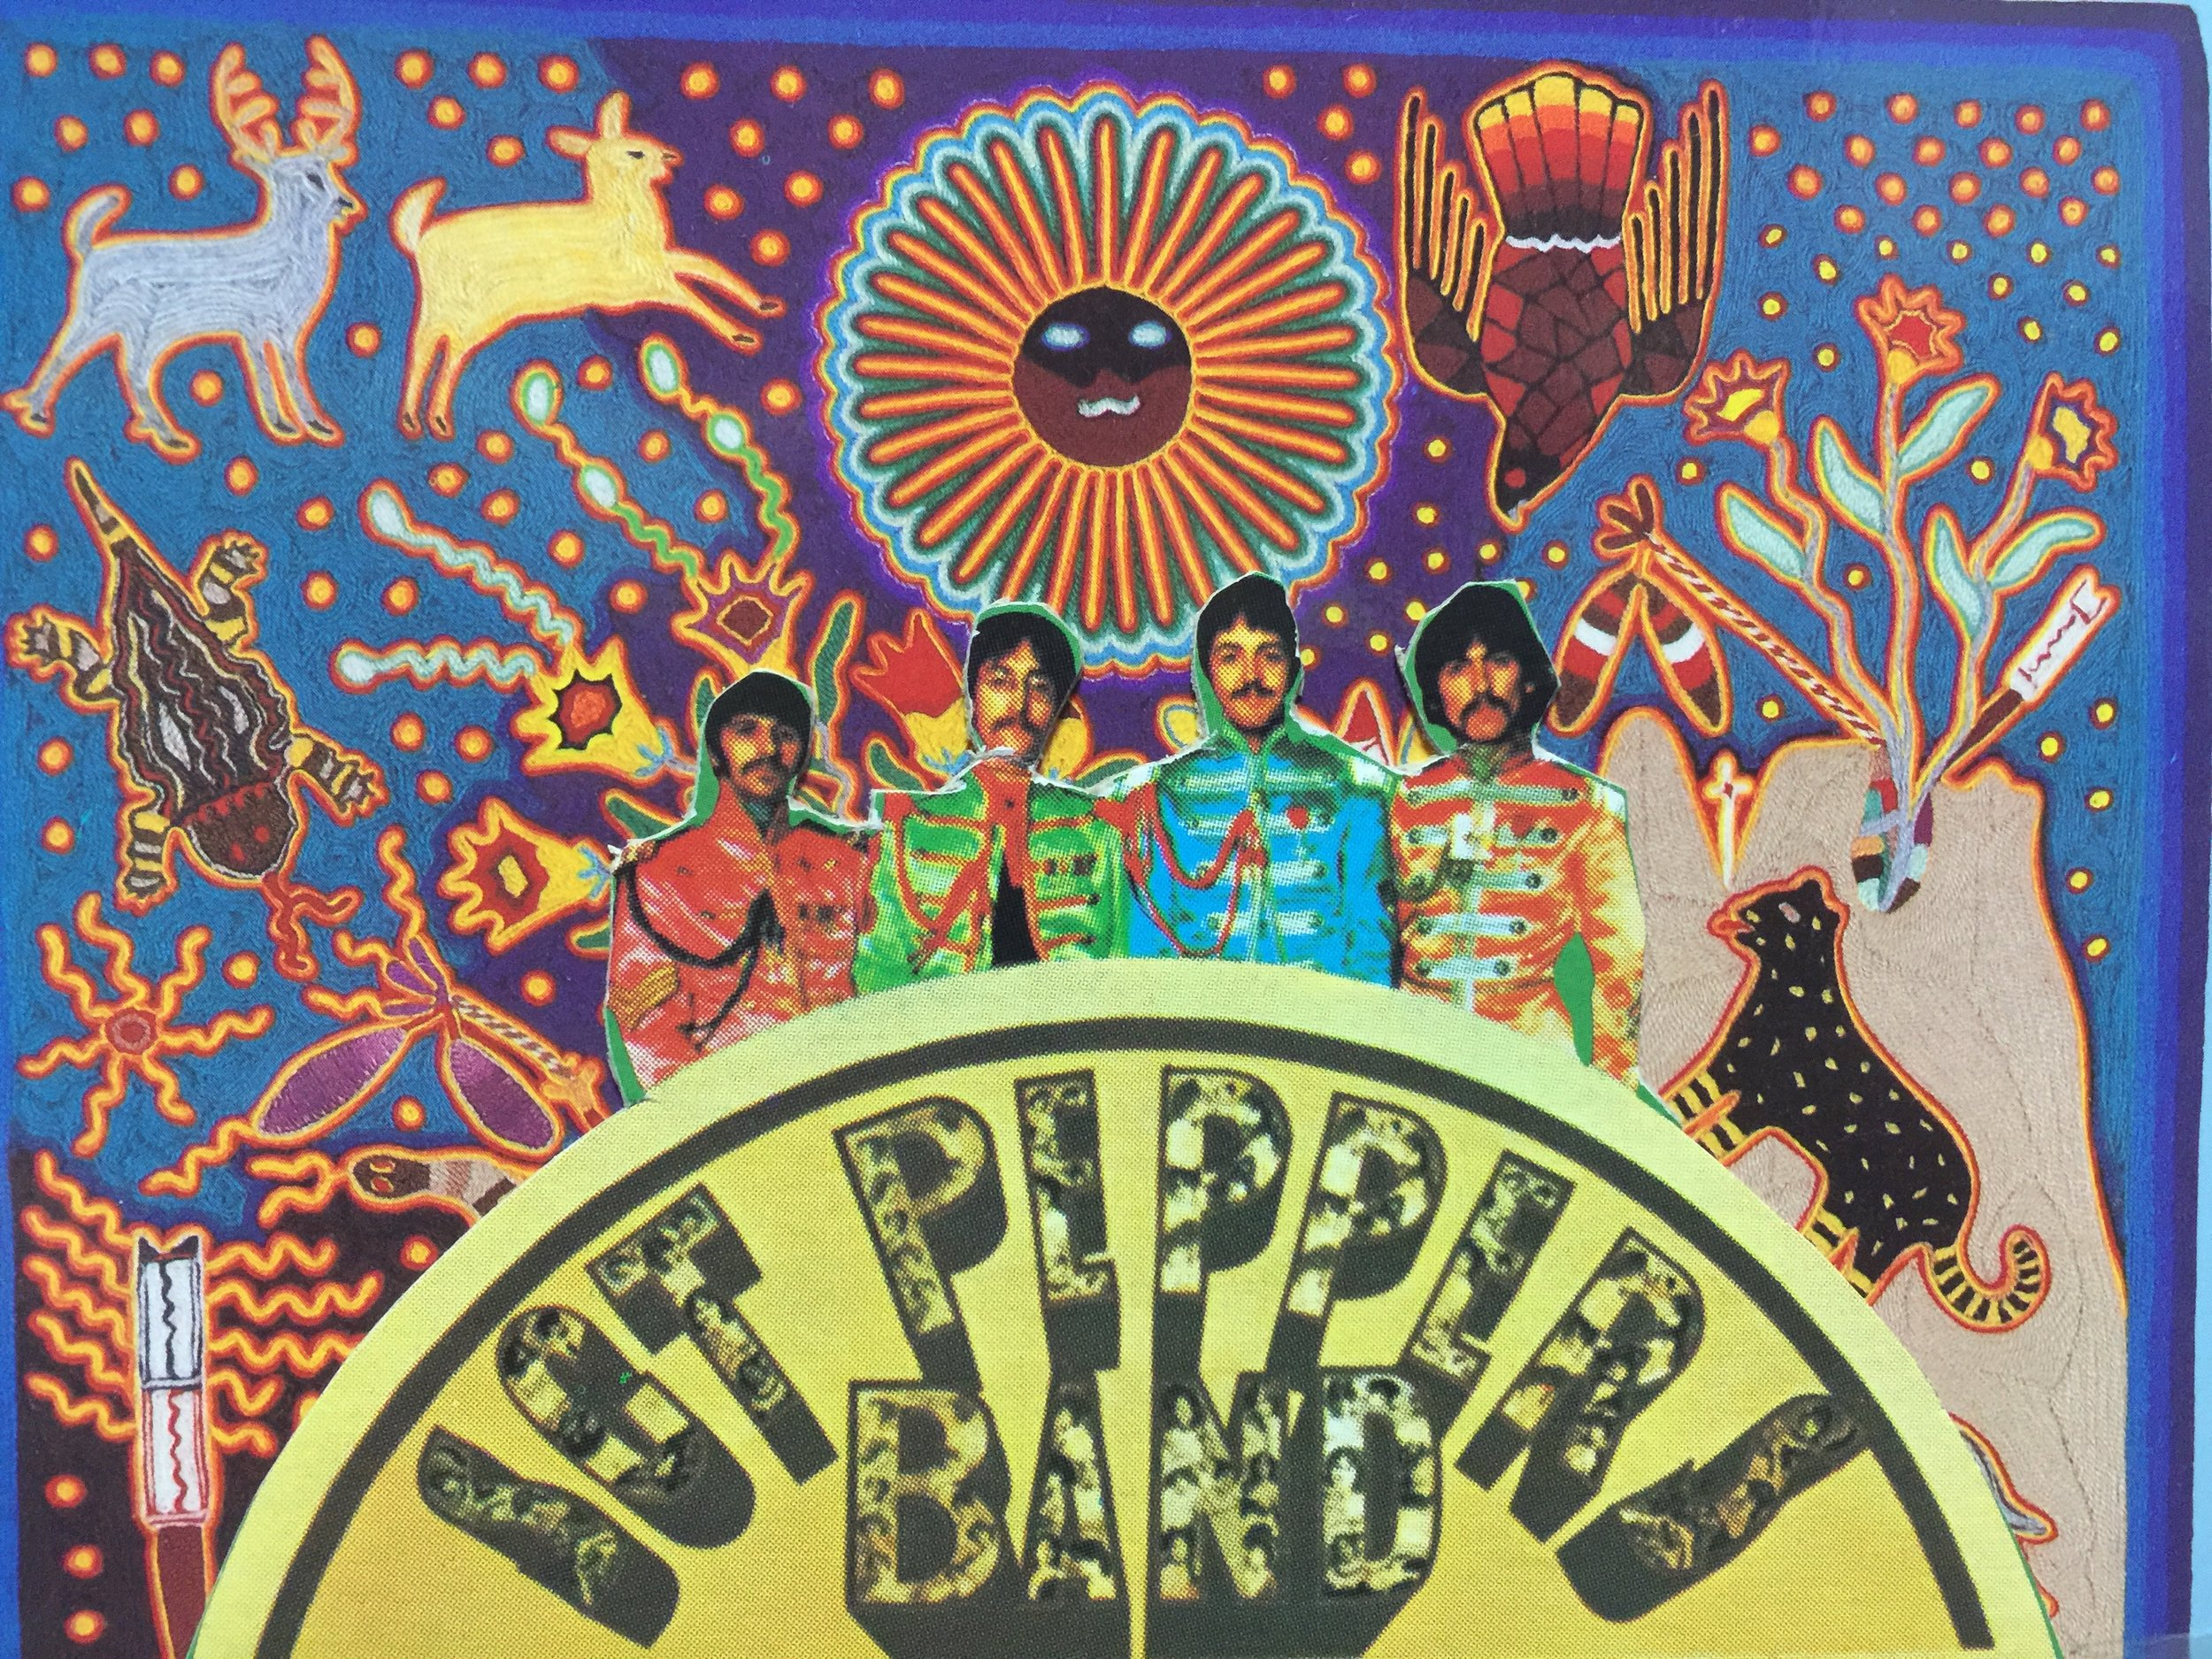 A mashup I made in high school from cutouts of the Sgt. Peppers album and a peyote-inspired artwork from native America which seemed to work at the time